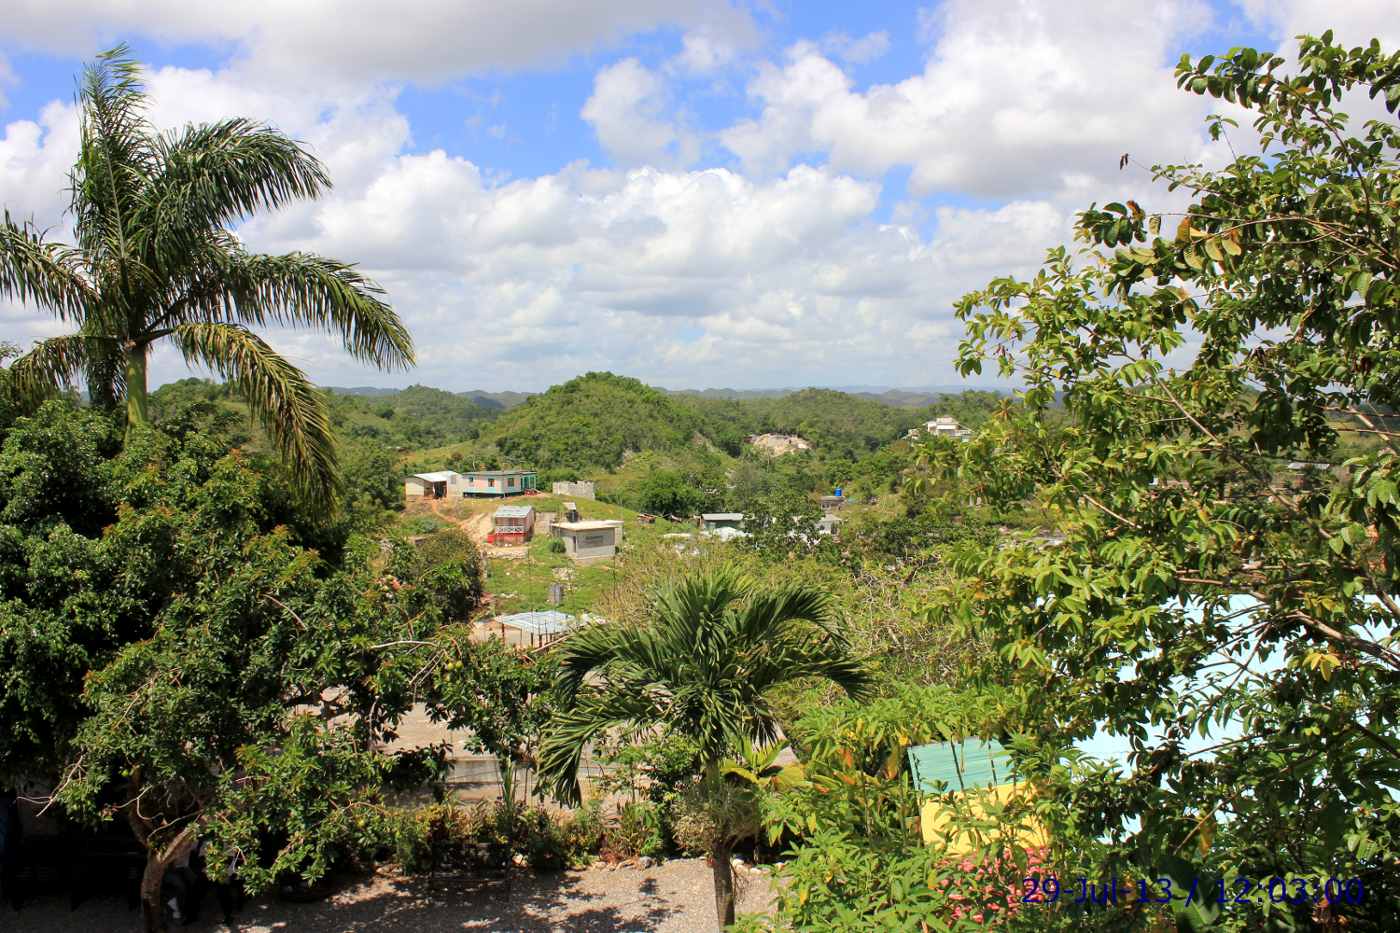 Jamaica: View from Inside Bob Marley's House